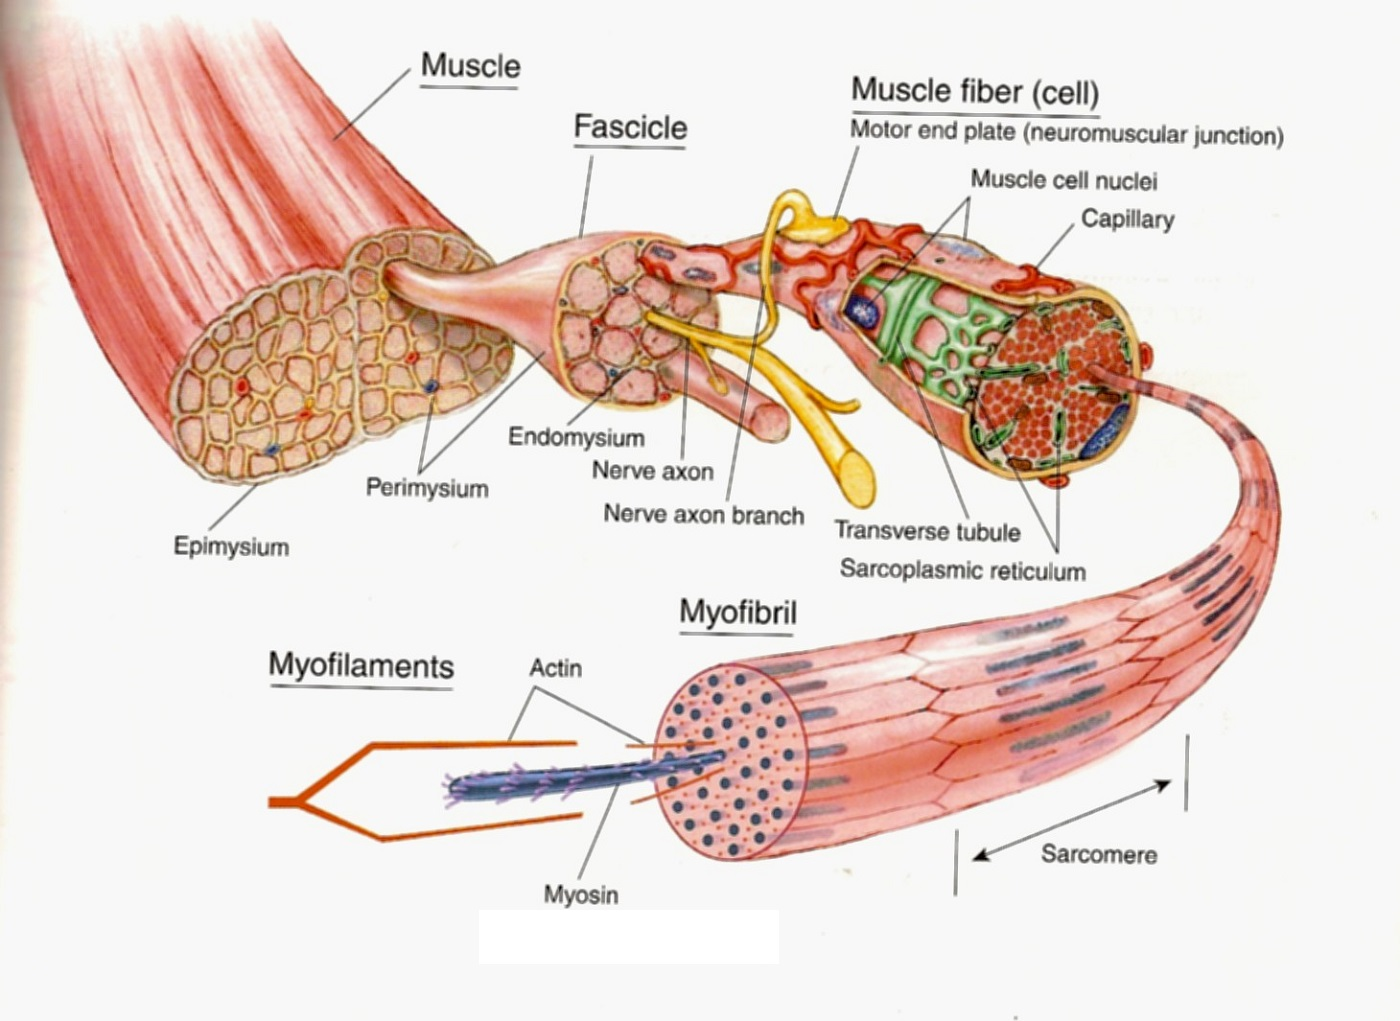 Body muscle diagram structure